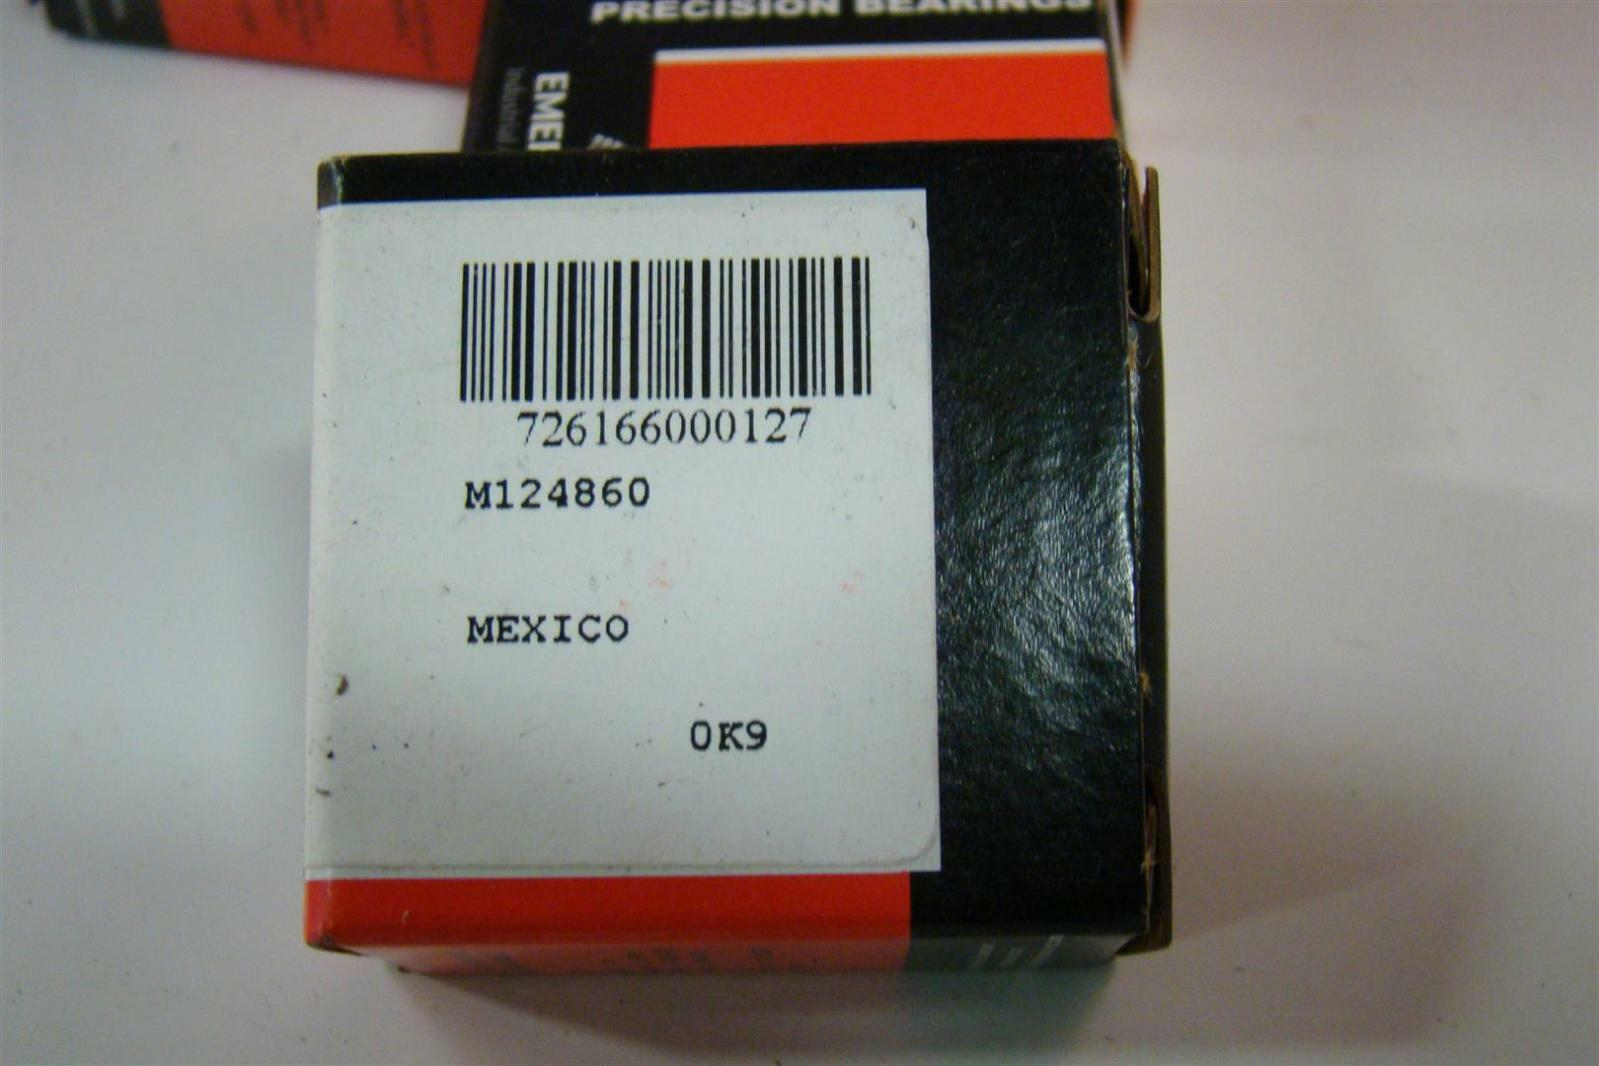 (4) Emerson McGill Precision Bearings Inner Race  MI 12 N M124860 MS 51962-5